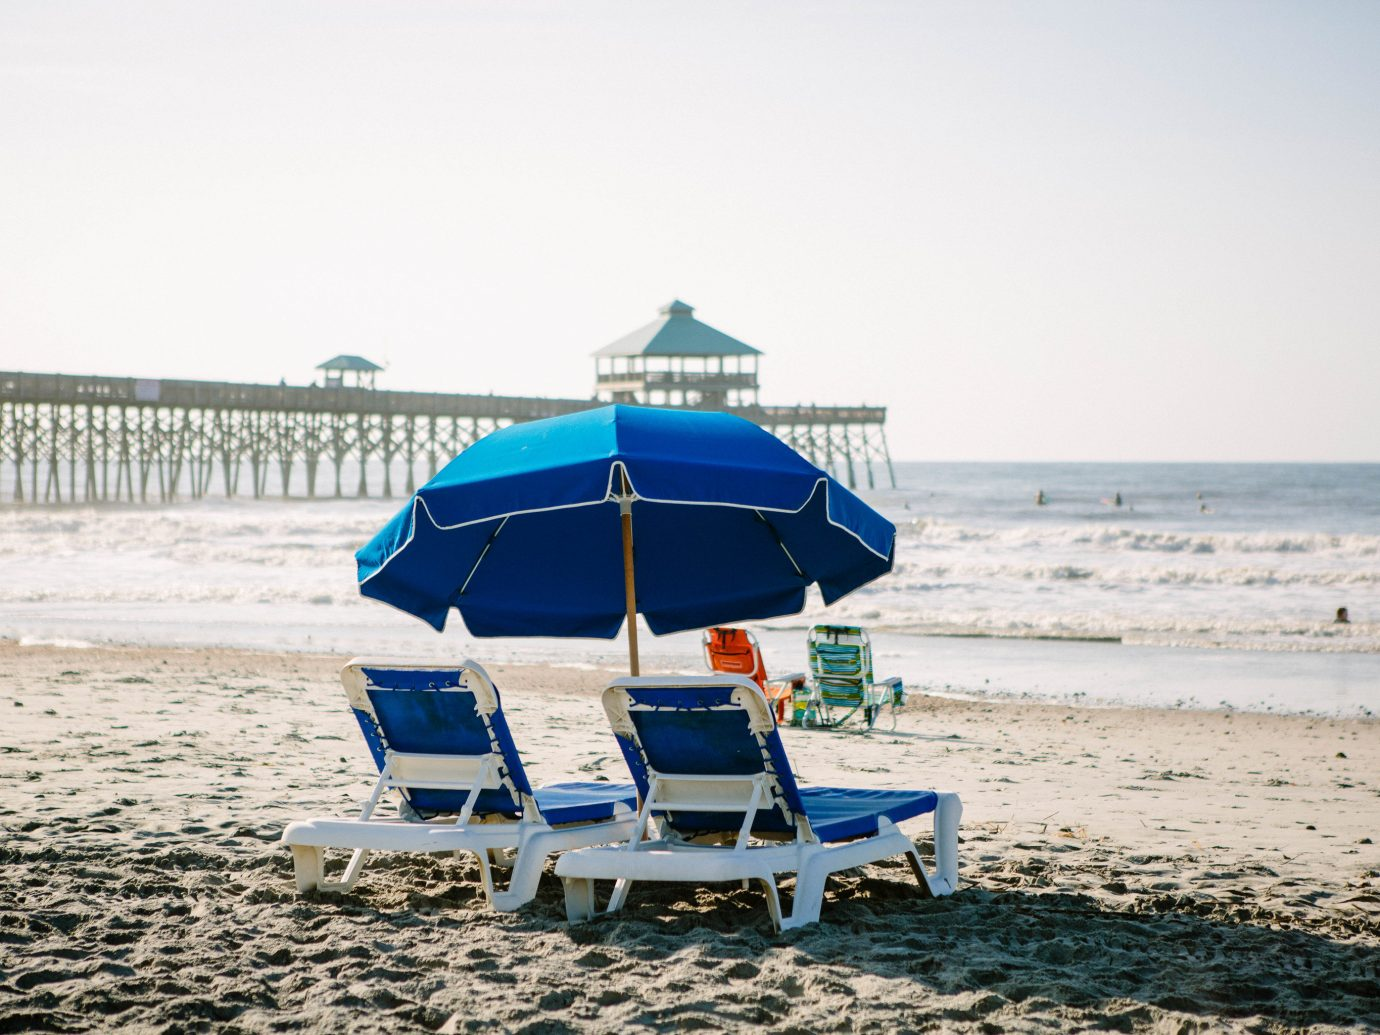 Road Trips Trip Ideas outdoor sky Beach ground Sea umbrella chair body of water vacation shore Ocean sand water tourism Nature summer coastal and oceanic landforms Coast leisure horizon wave sandy day